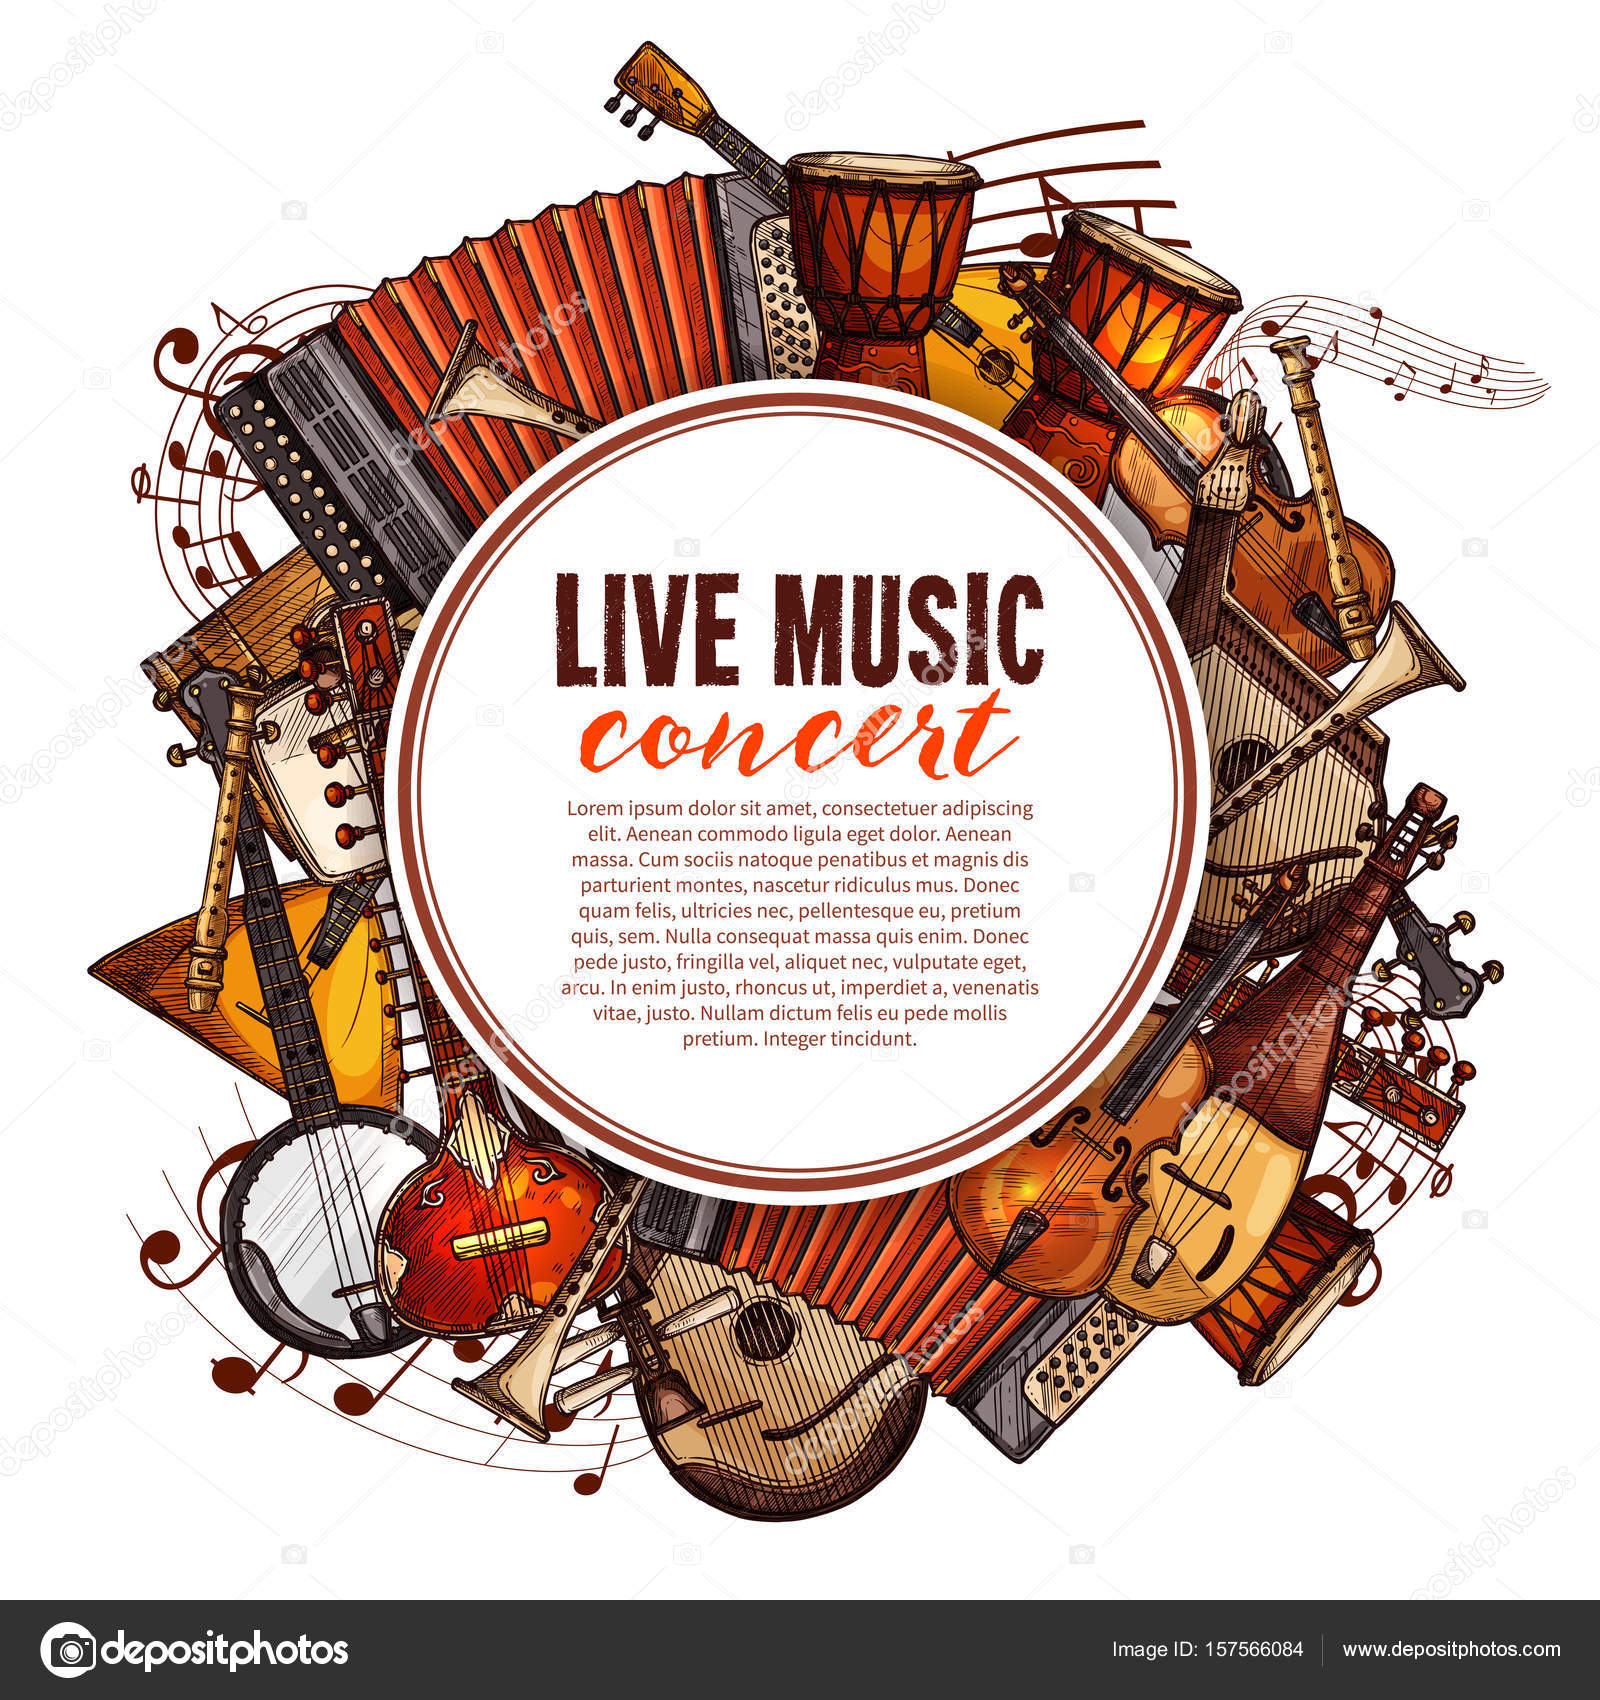 Live Music Concert Poster Of Musical Instruments Vector Design Folk Accordion Ethnic Jembe Drums Jazz Saxophone And Fiddle Violin Banjo Guitar